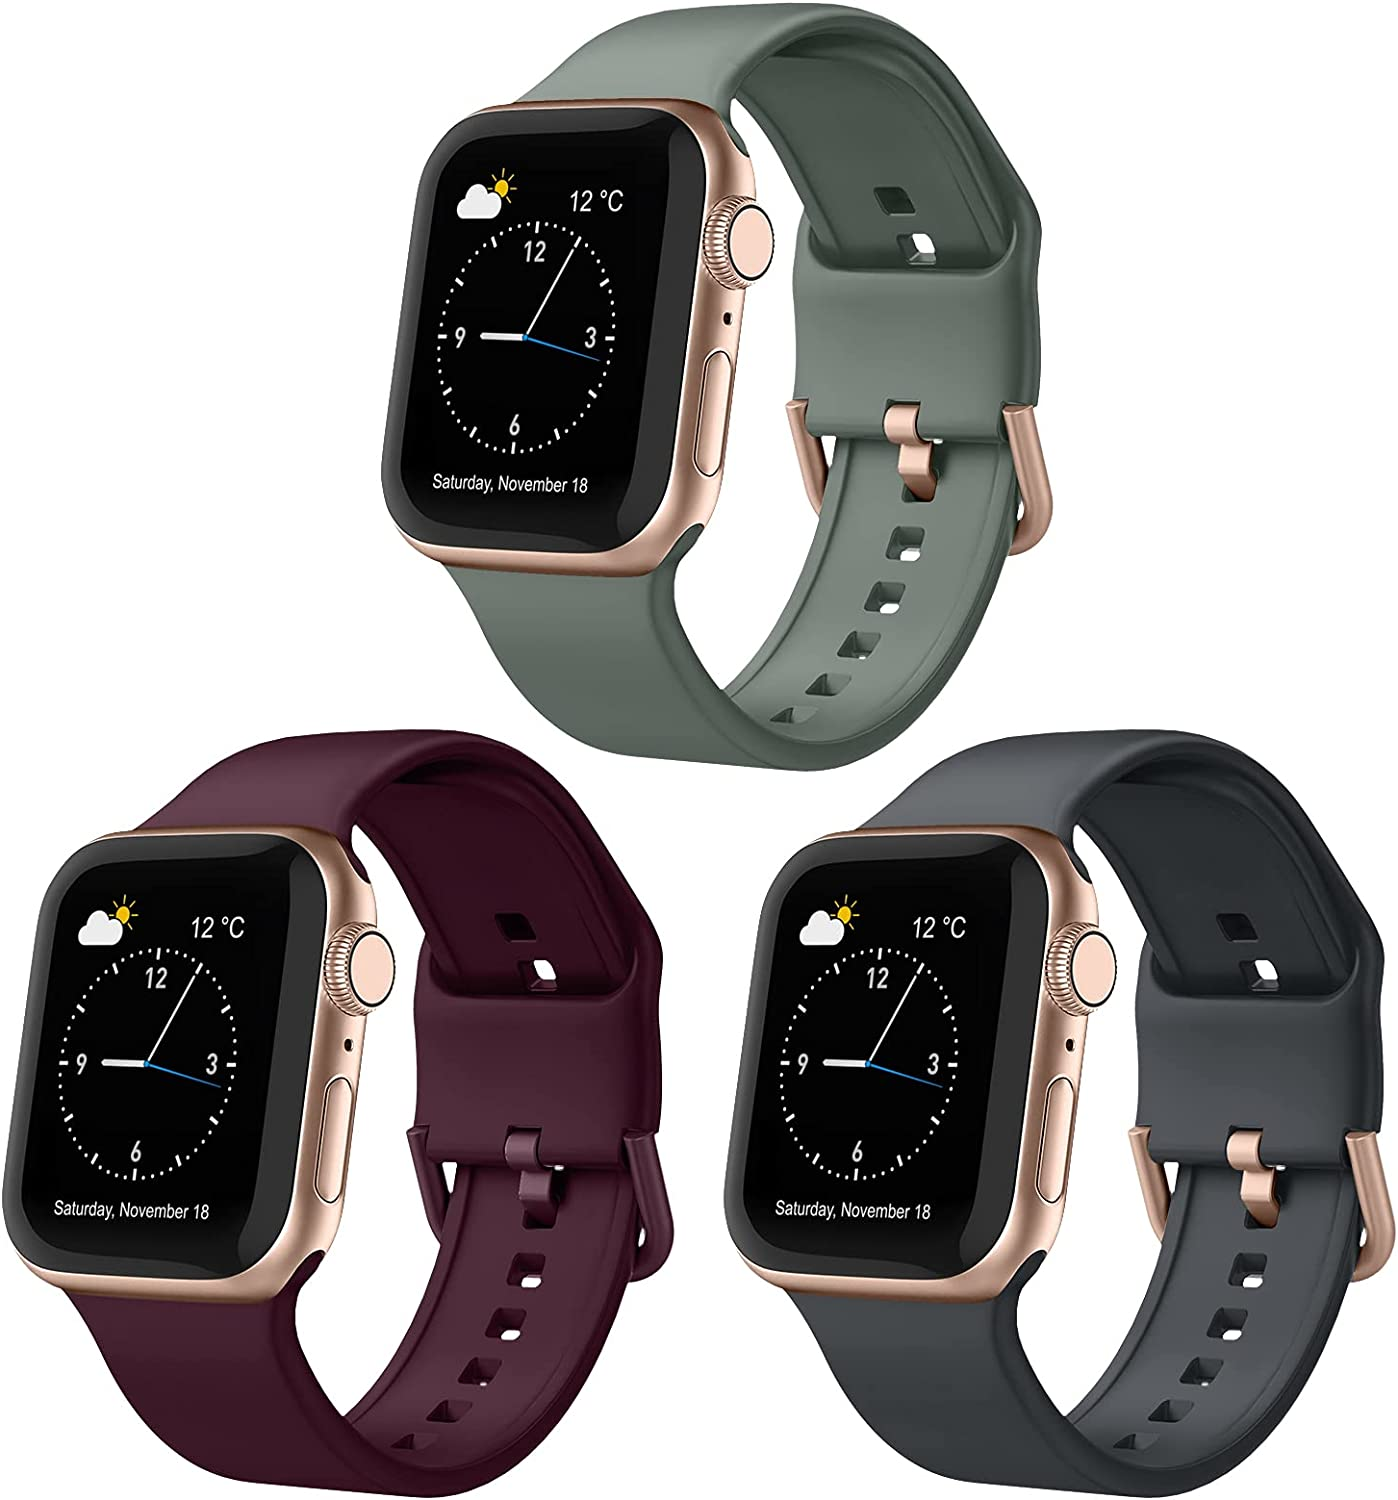 Adepoy 3 Pack Compatible with Apple Watch Bands 44mm 42mm, Soft Silicone Sport Wristbands Replacement Strap with Classic Clasp for iWatch Series SE 6 5 4 3 2 1 for Women Men, 42mm/44mm